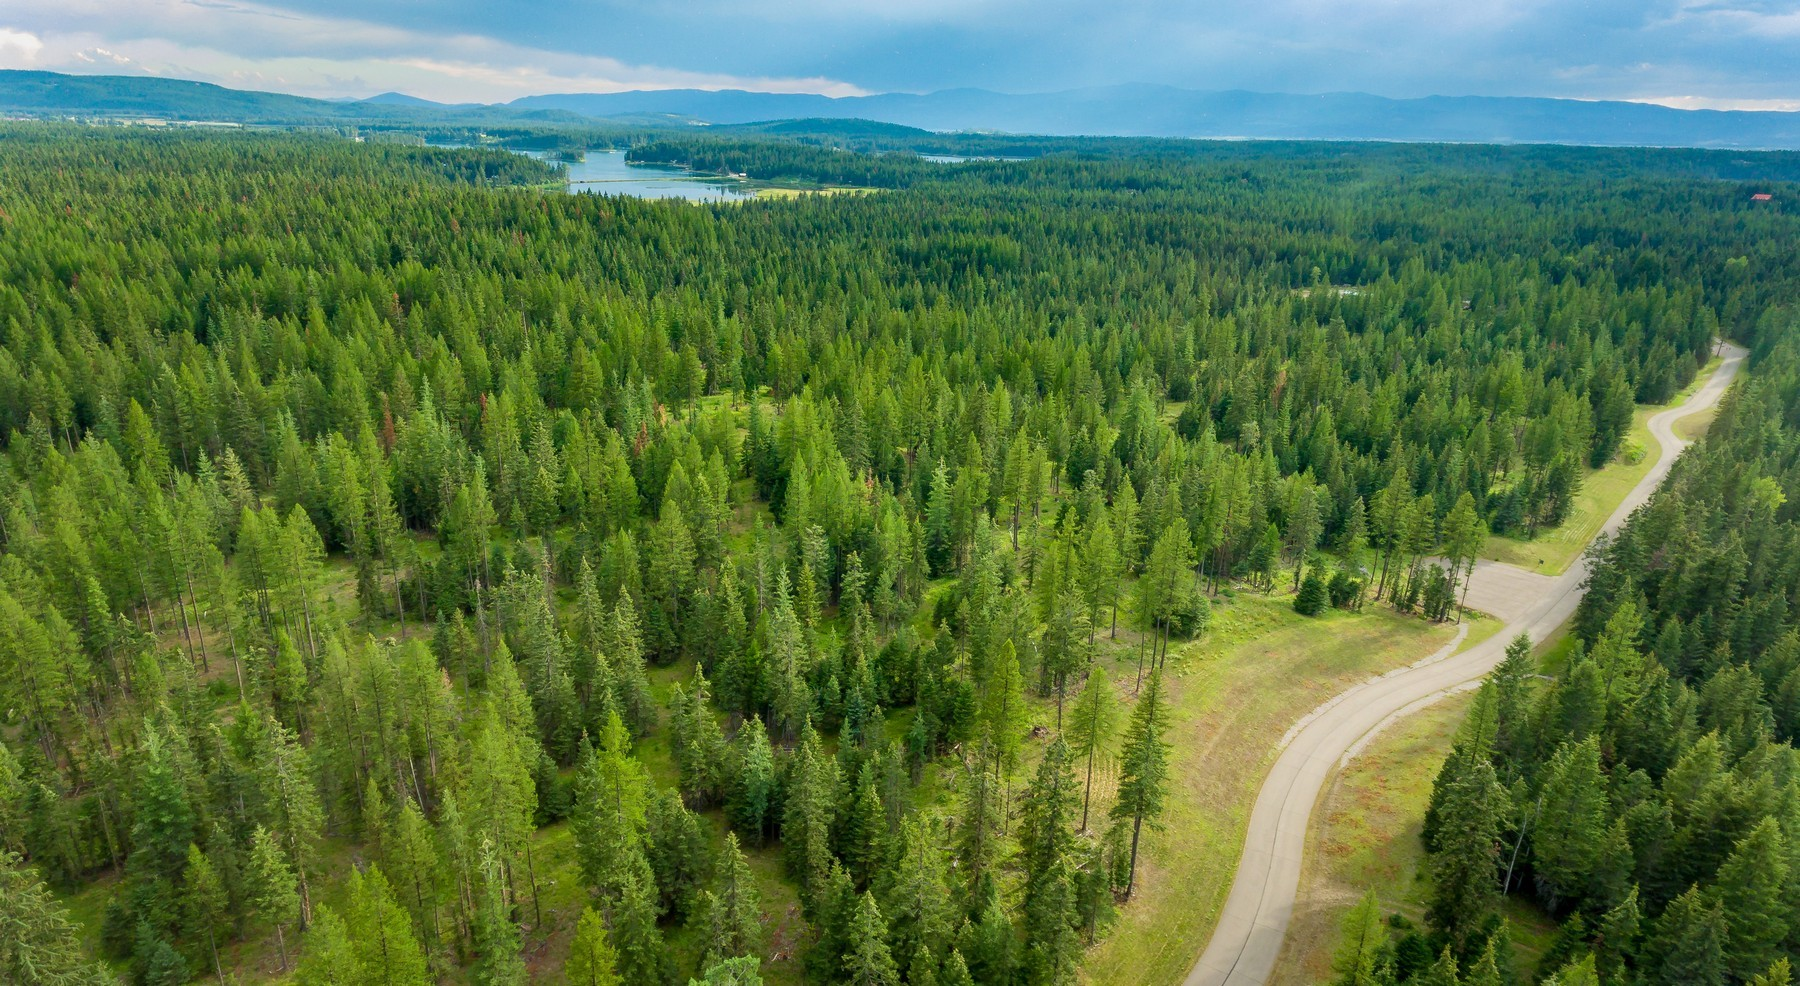 Additional photo for property listing at Nhn Jewel Basin Ranch Road, Lots 2 3 4, Bigfork, M Nhn  Jewel Basin Ranch Rd Lots 2 3 4 Bigfork, Montana 59911 United States